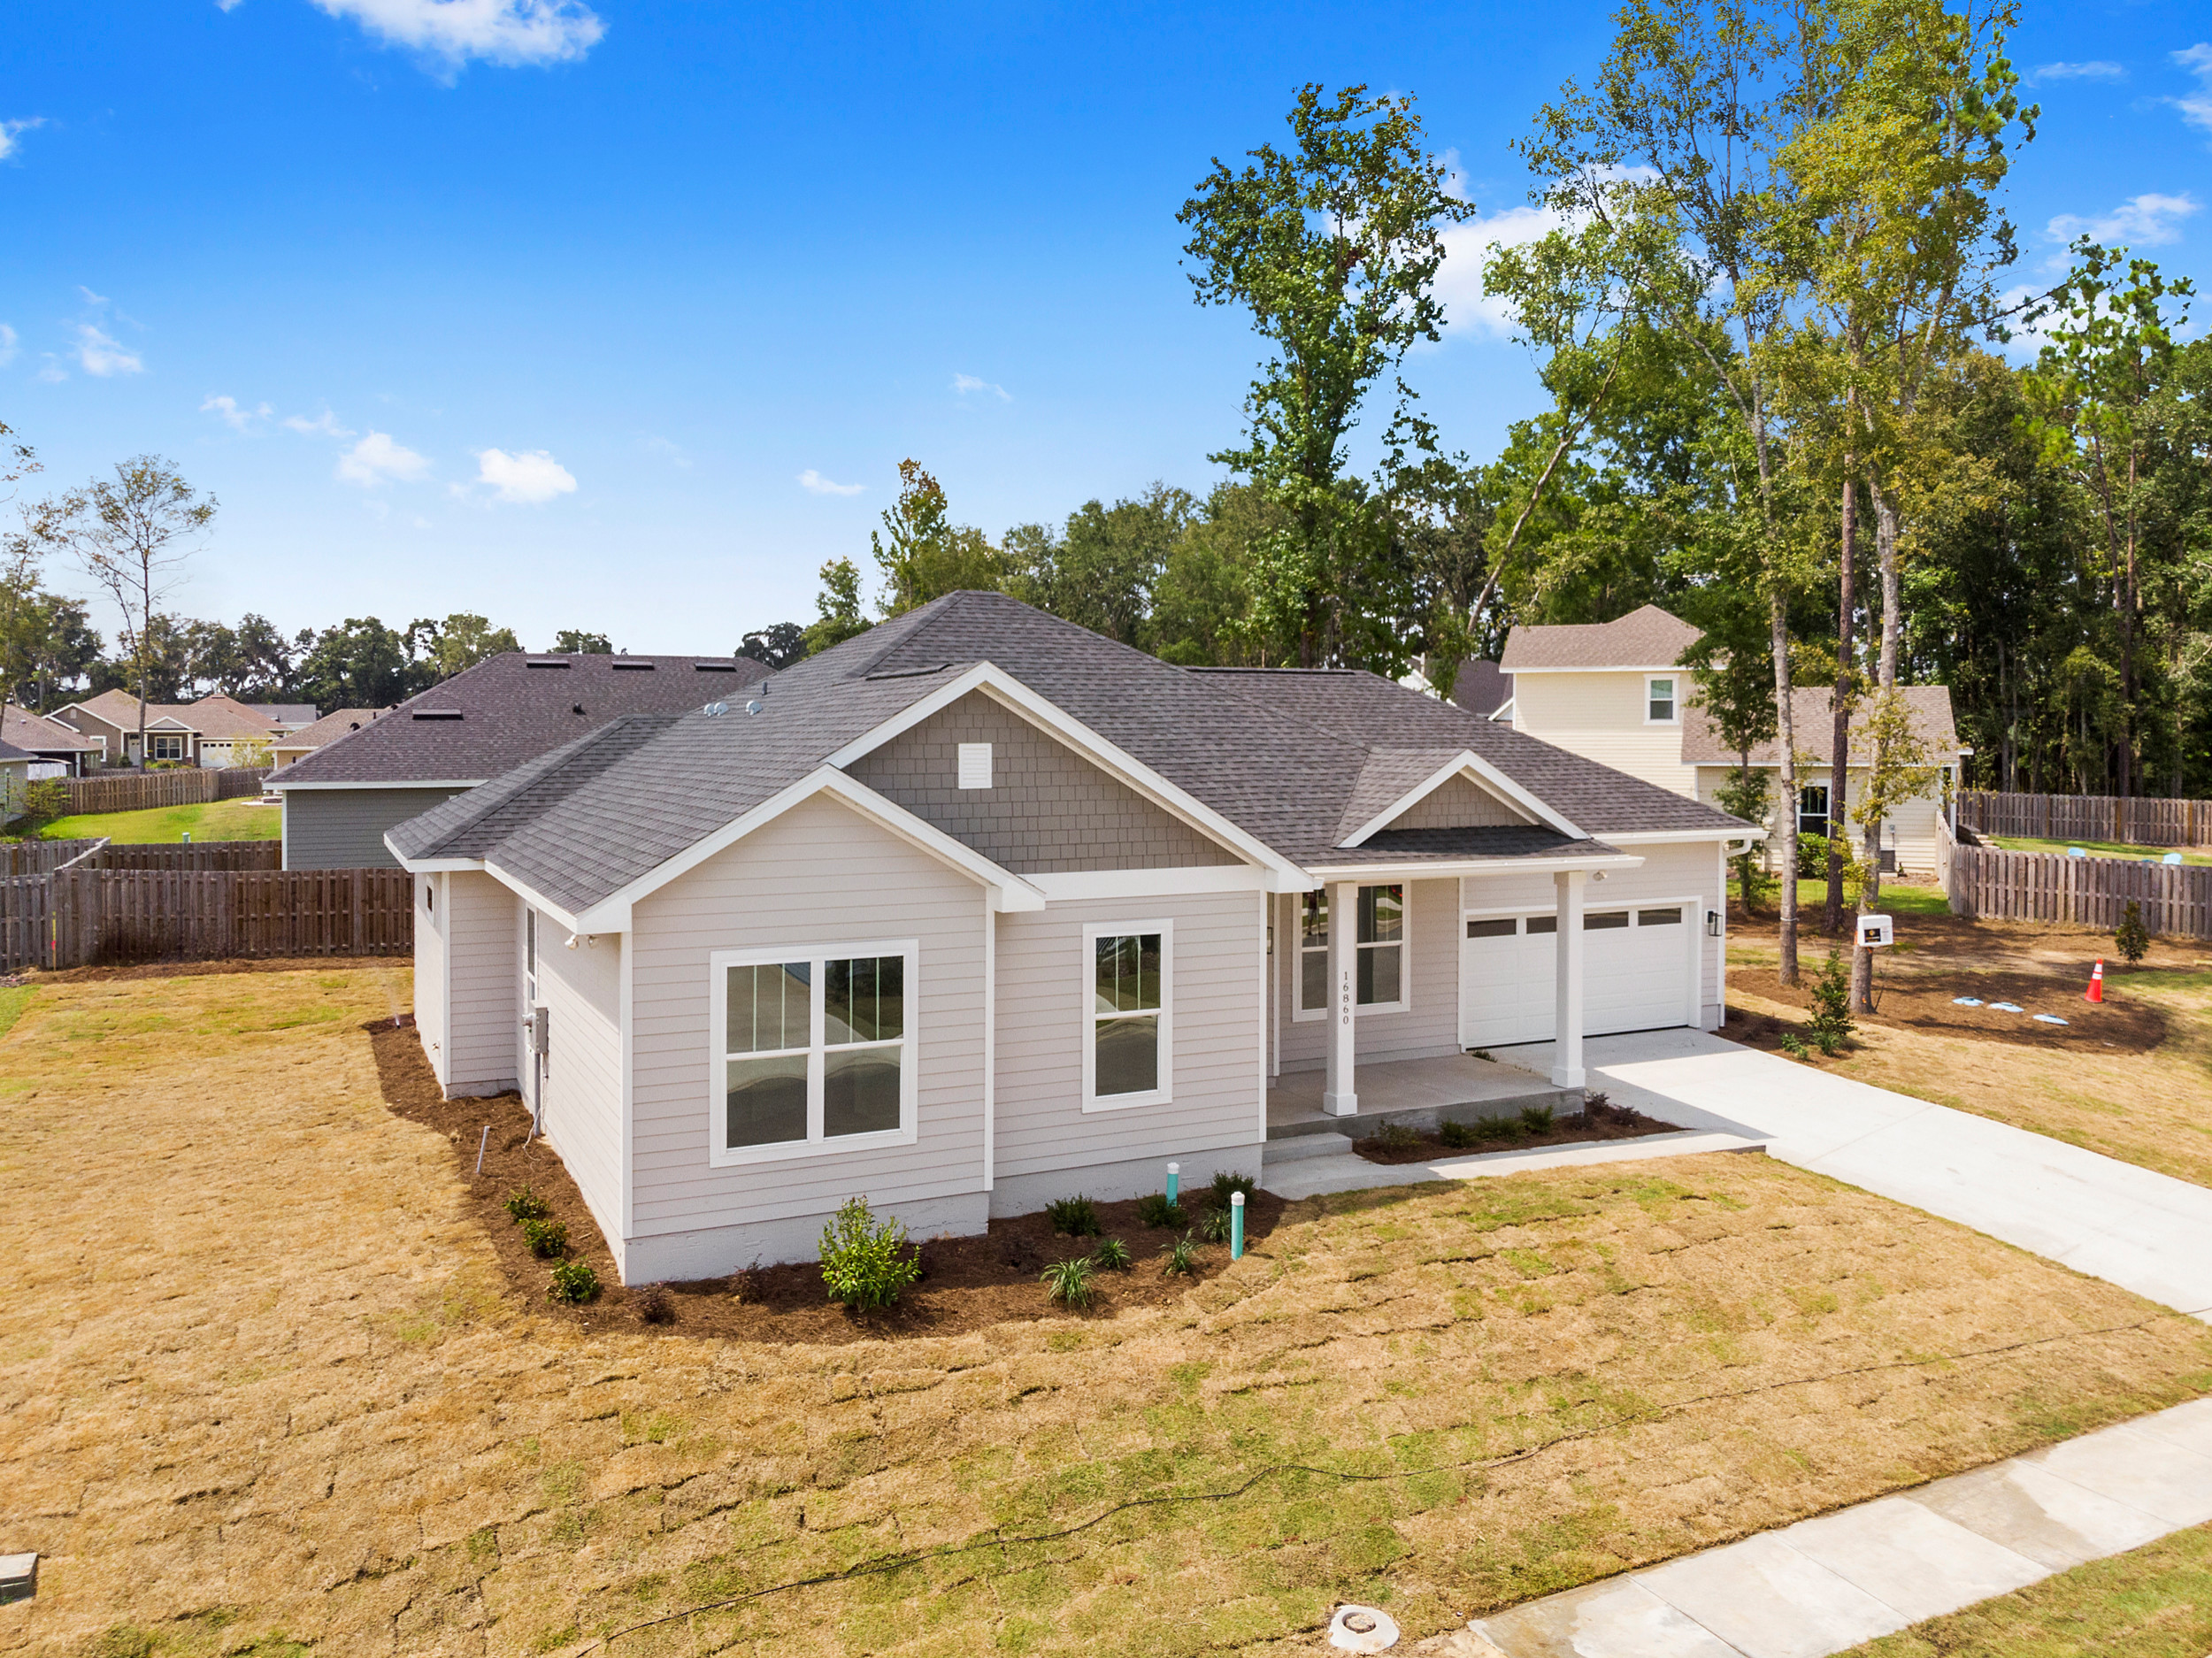 New Home - The Heritage Model - 1,820